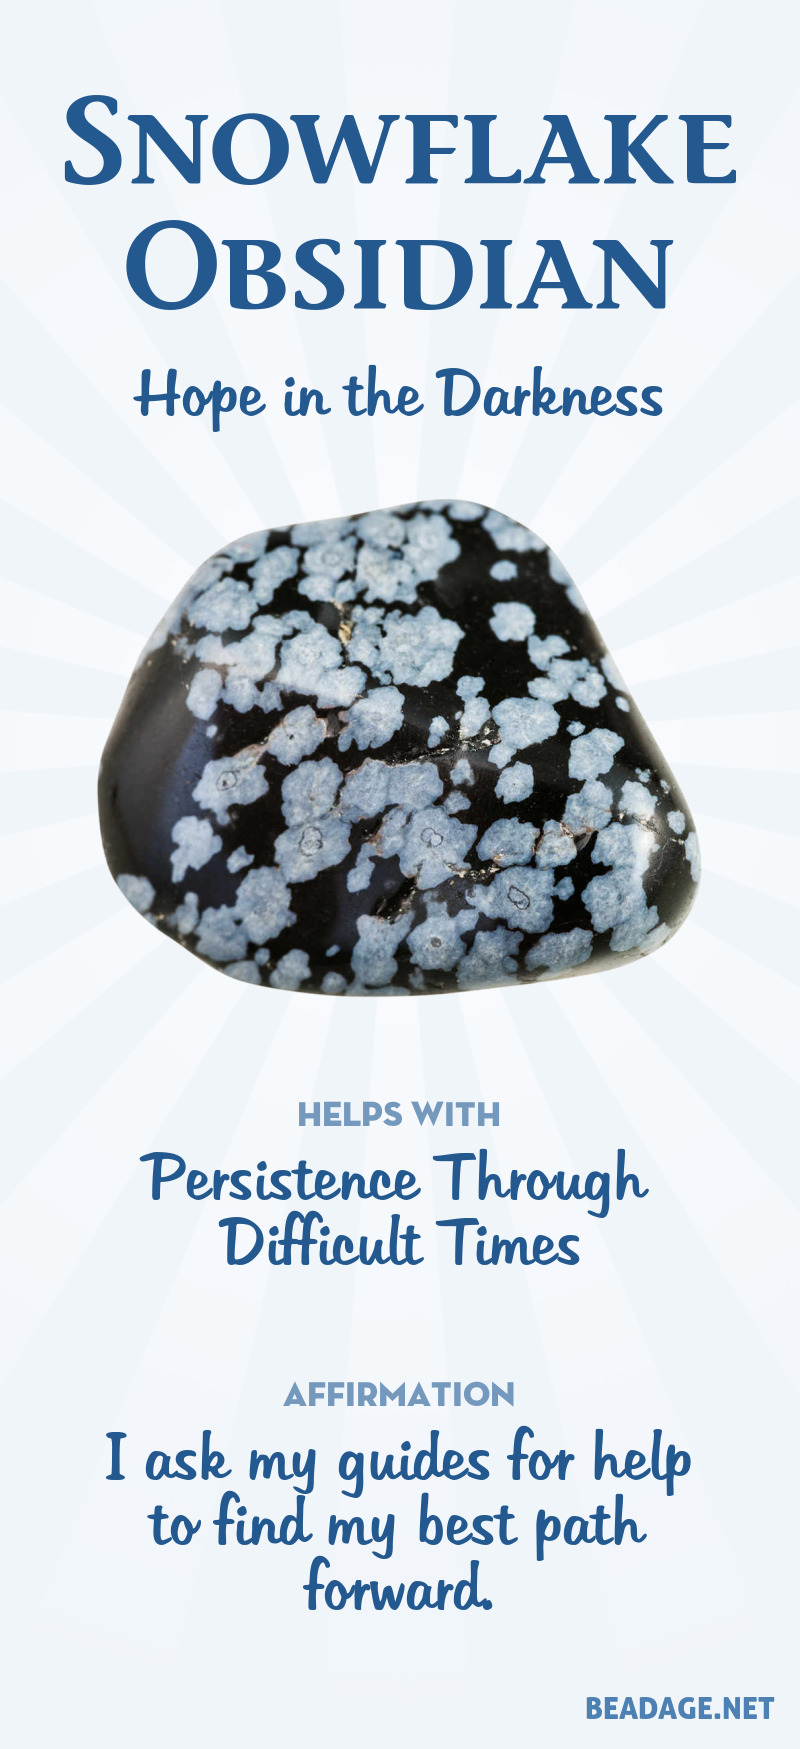 Snowflake Obsidian Meaning & Healing Properties | Learn about gemstones and crystal healing and jewelry at beadage.net. #gemstones #crystals #crystalhealing #snowflake obsidian